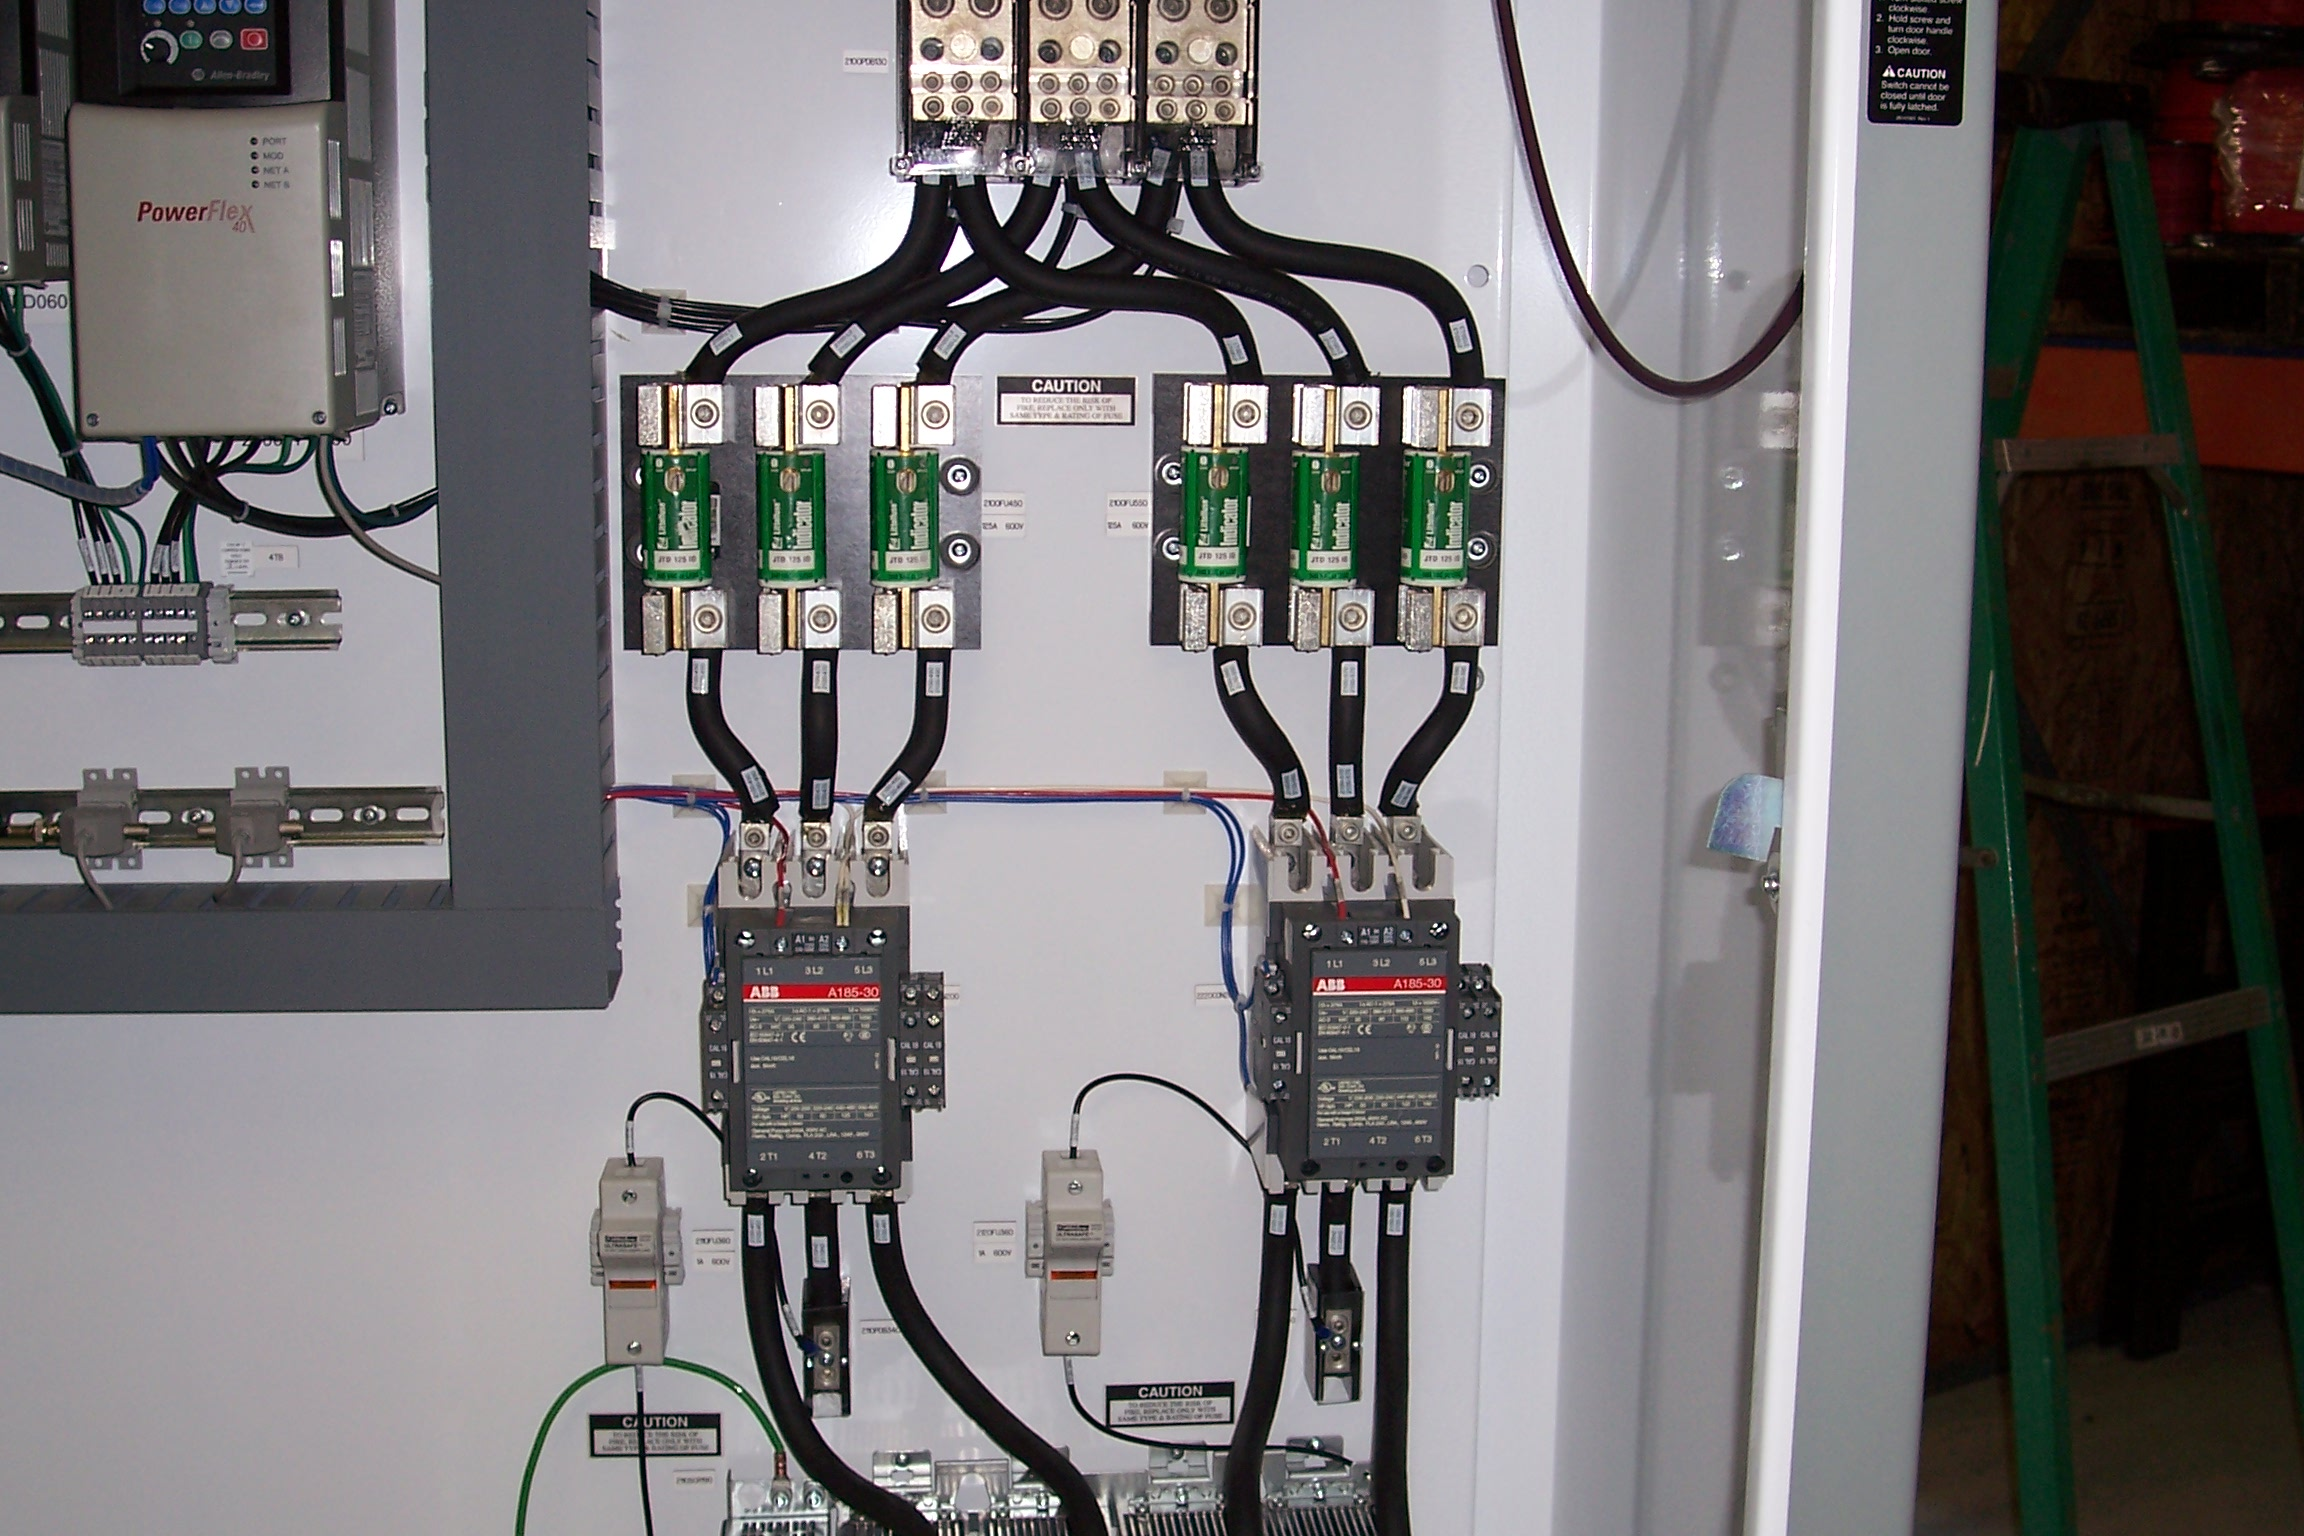 Wiring Industrial Controls Electrical Diagram Control Panel Trusted Transformer A To Box